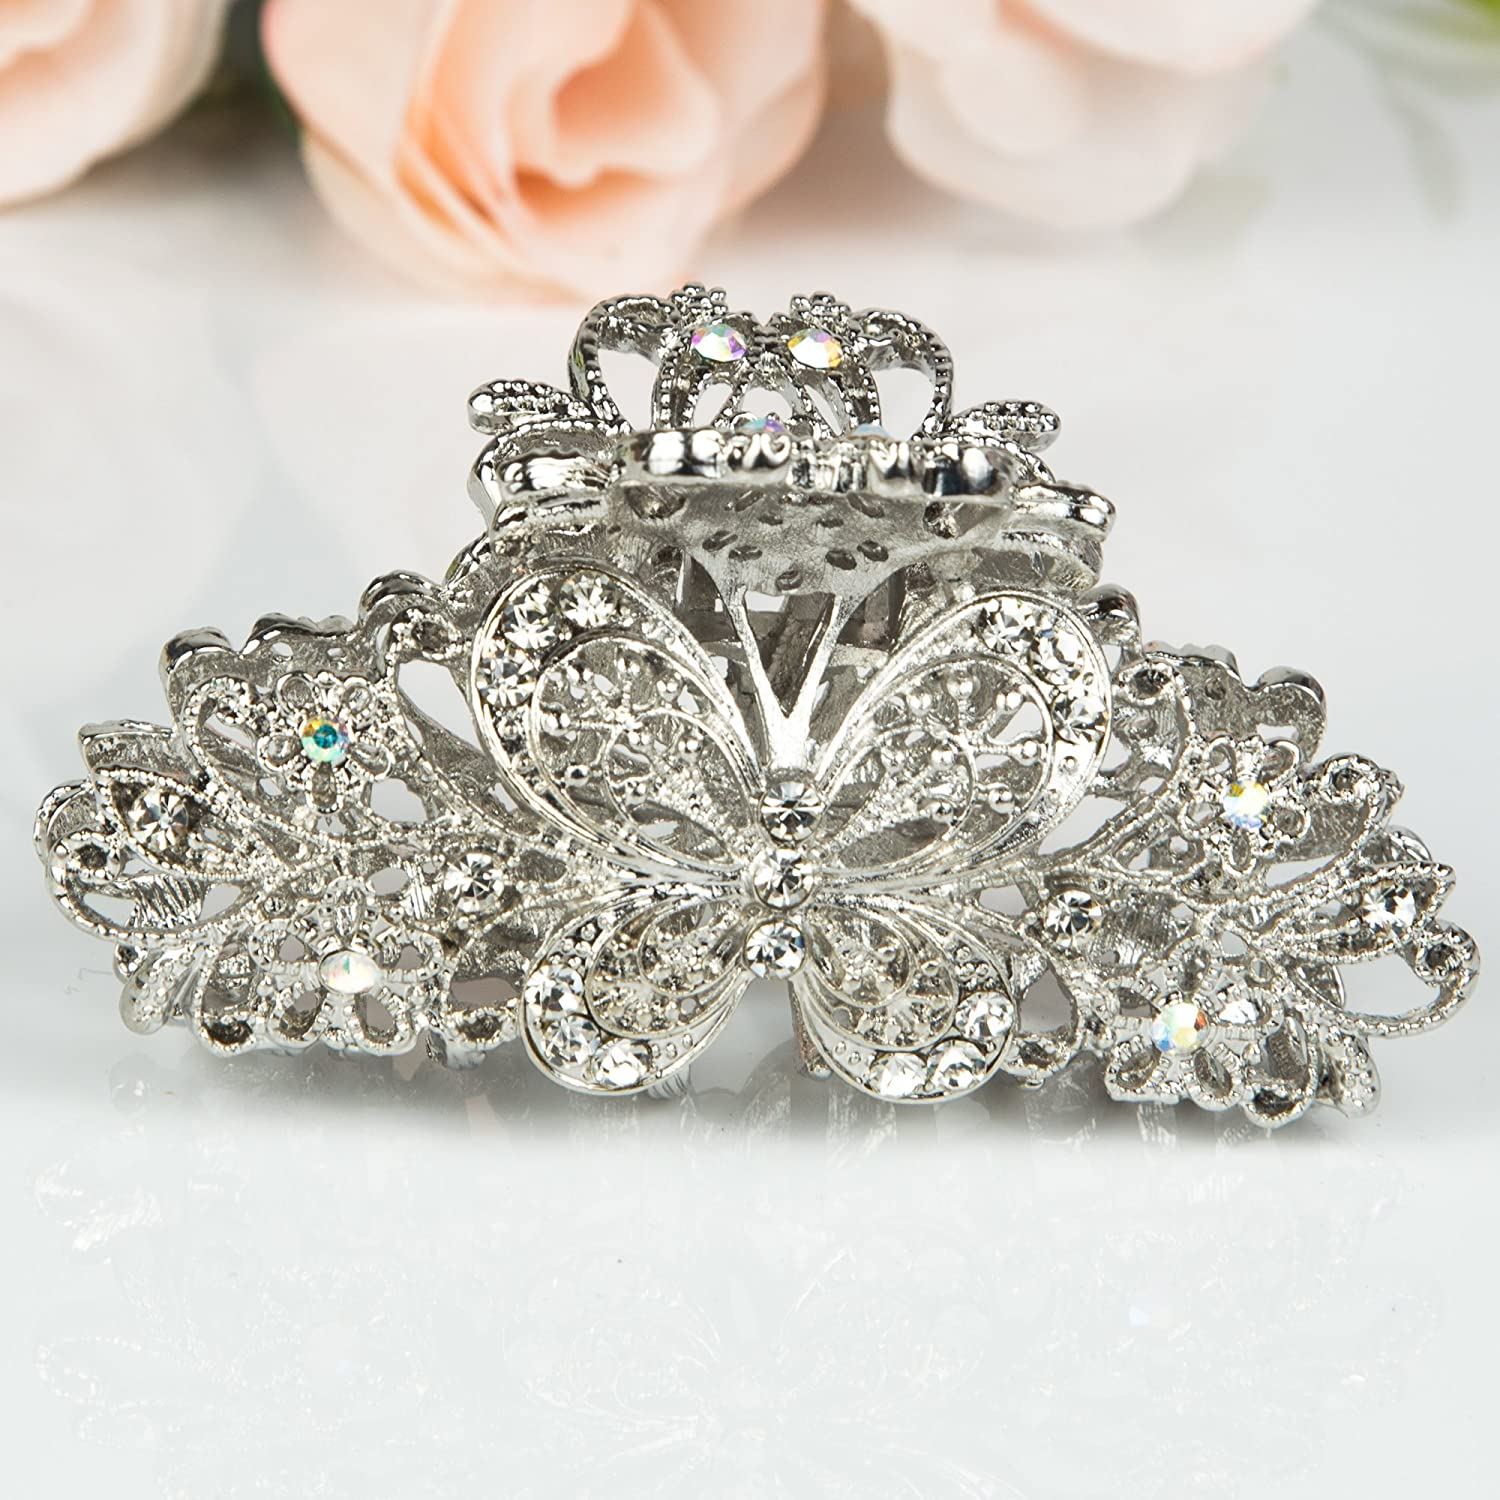 NEW  DESIGN DIAMANTE GLITTERY HAIRCLIP BLING CLAW GRIP BUTTERFLY CLAMP